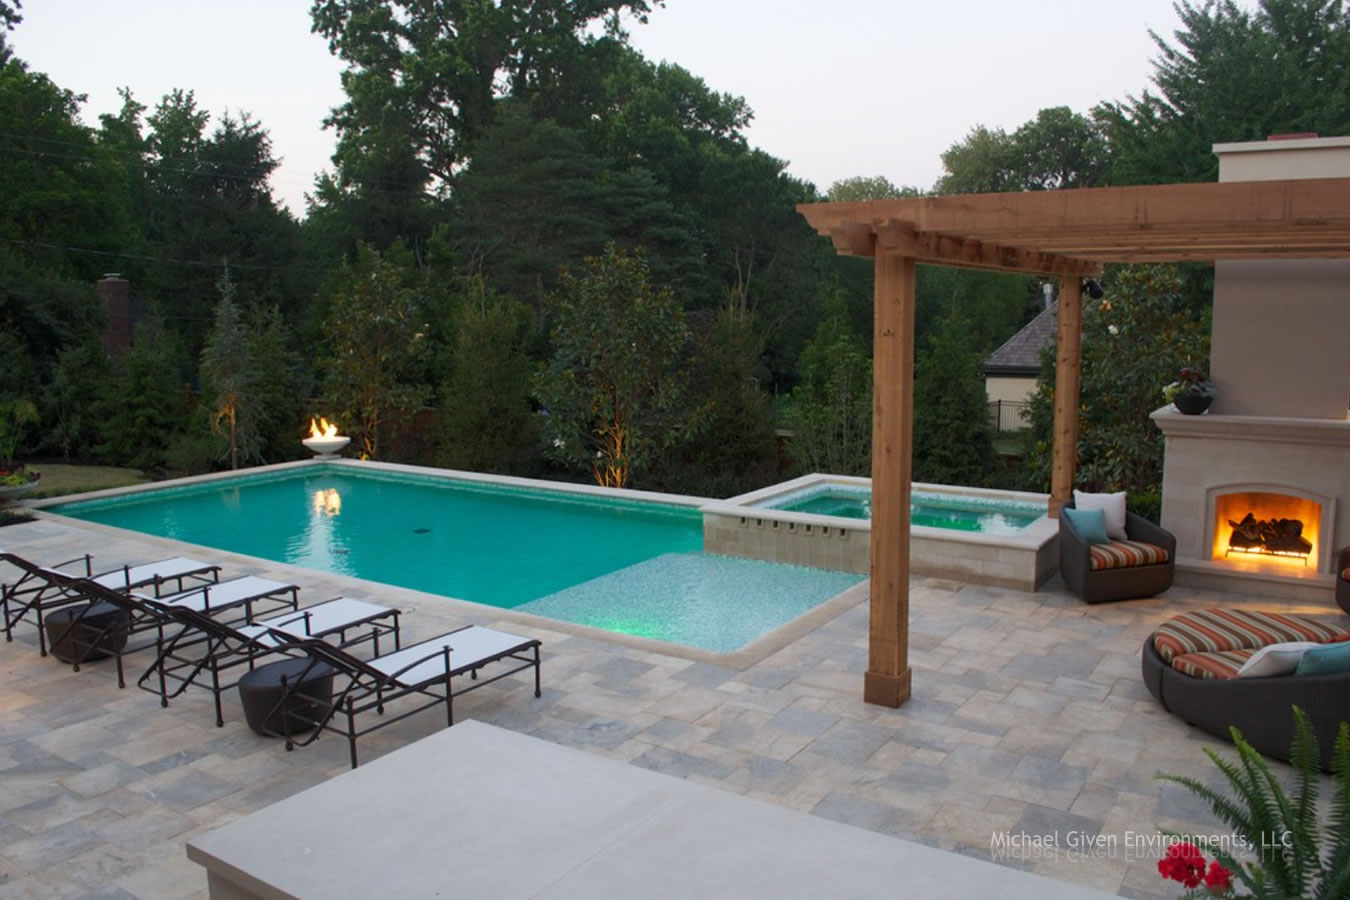 High Quality Pool U0026 Outdoor Living Environment